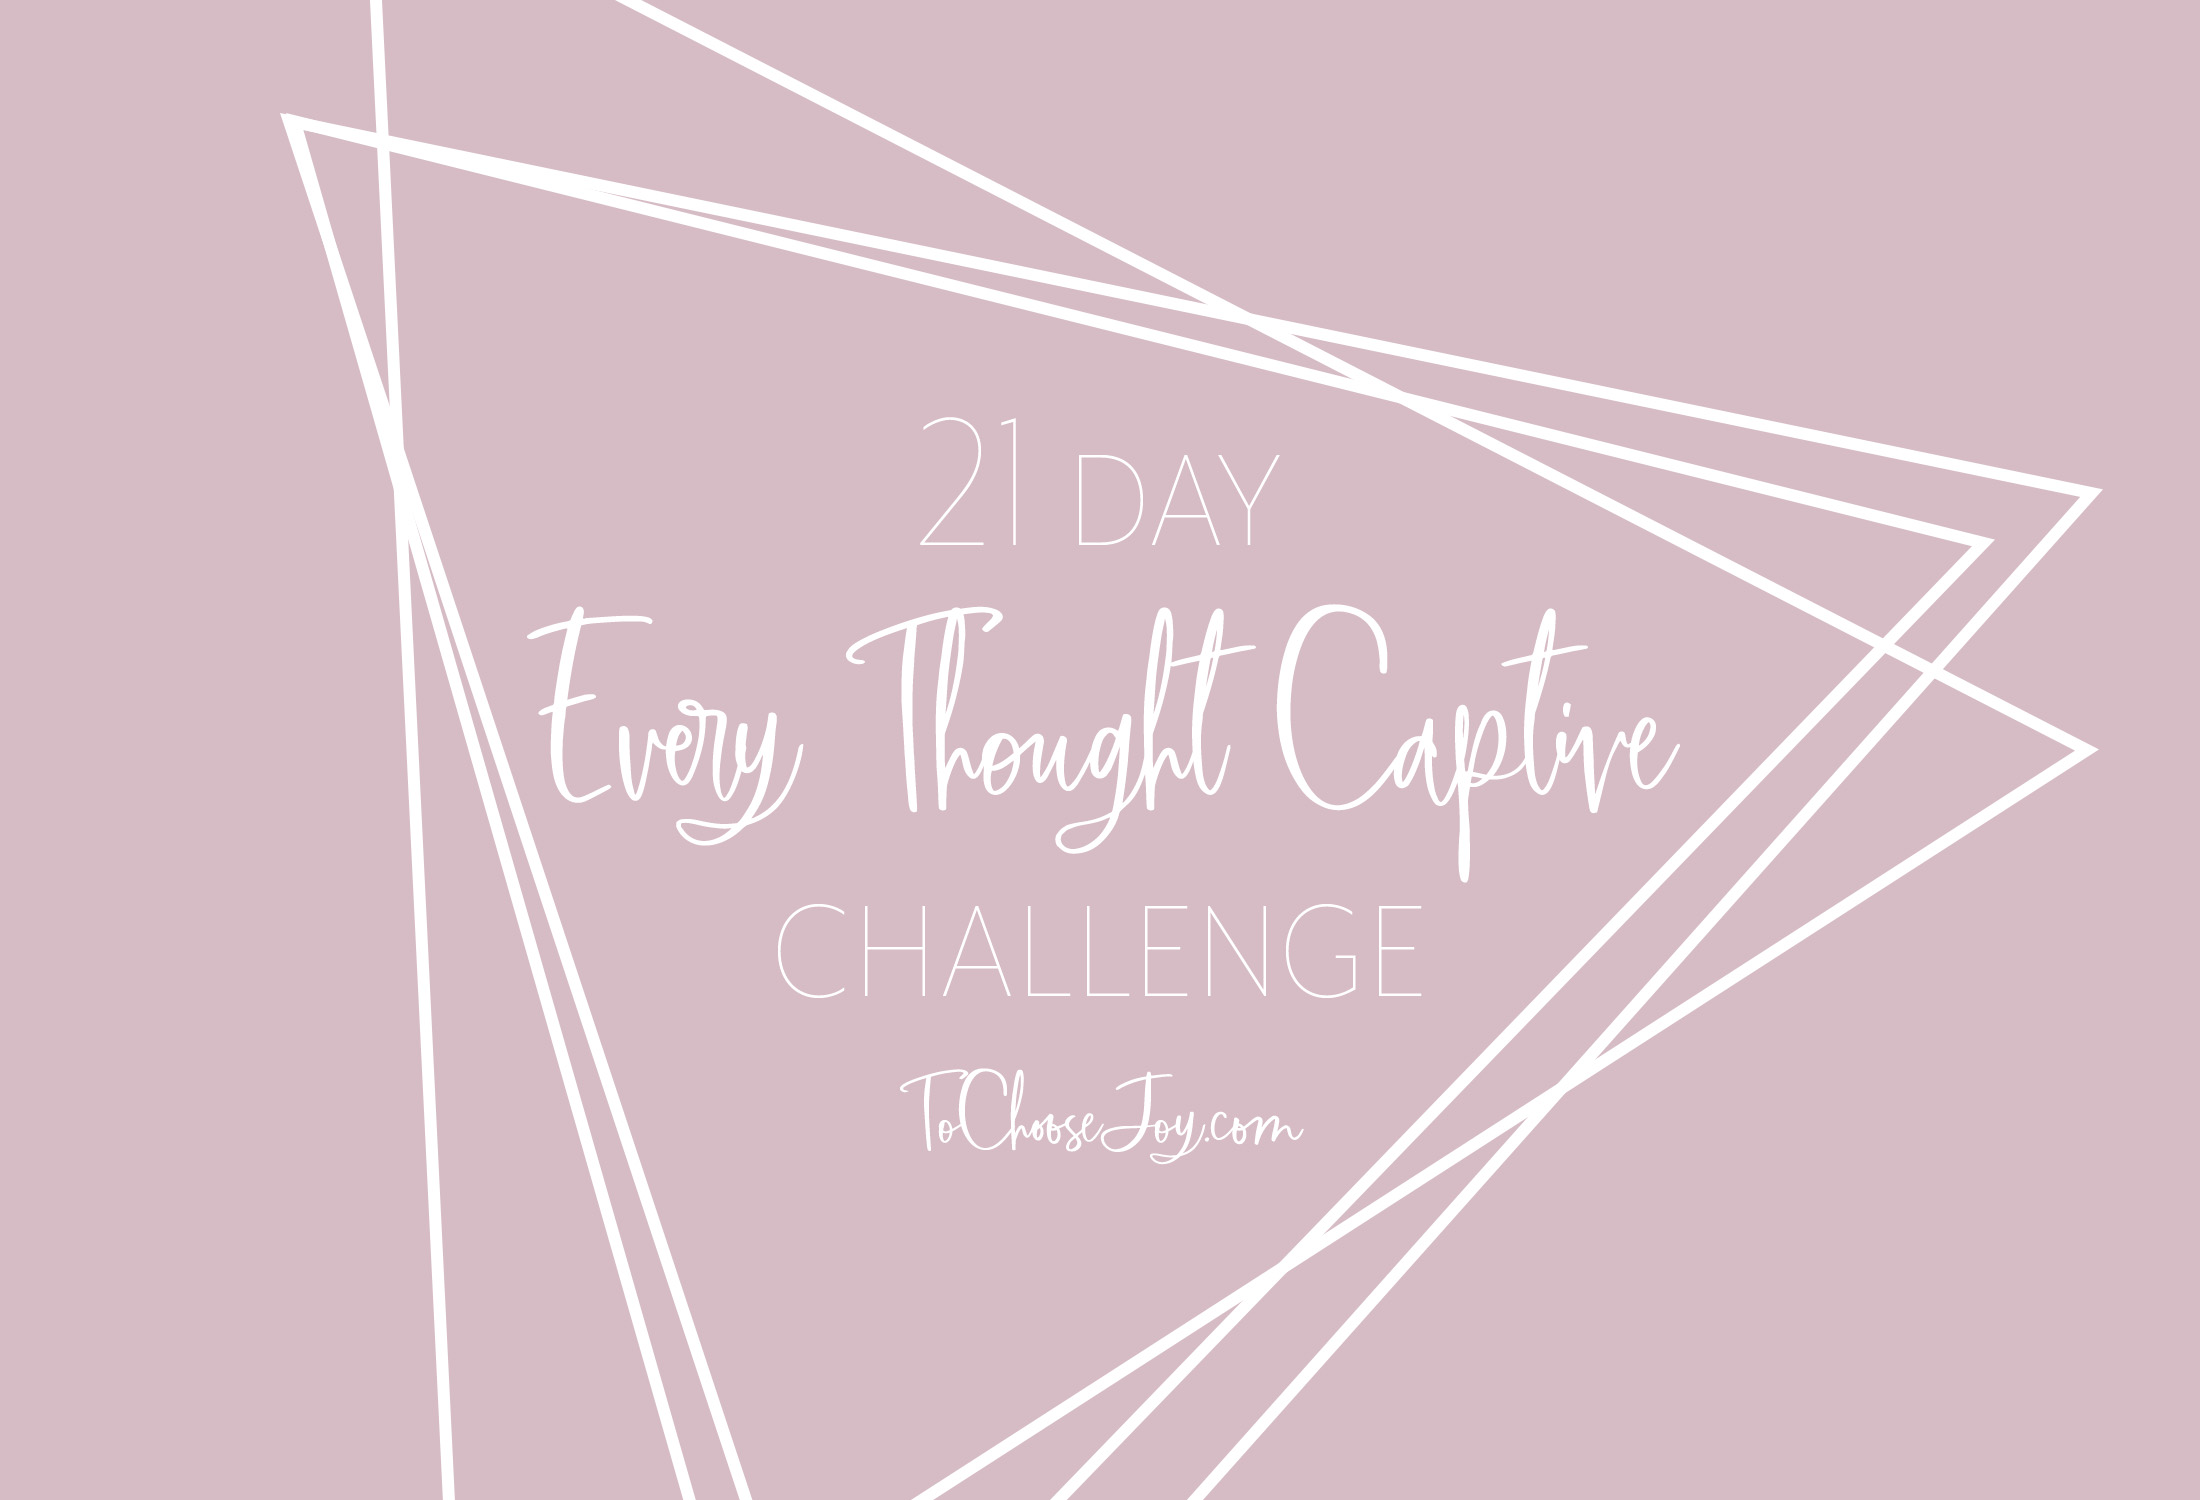 21 Day Every Thought Captive Challenge Facebook Cover.jpg